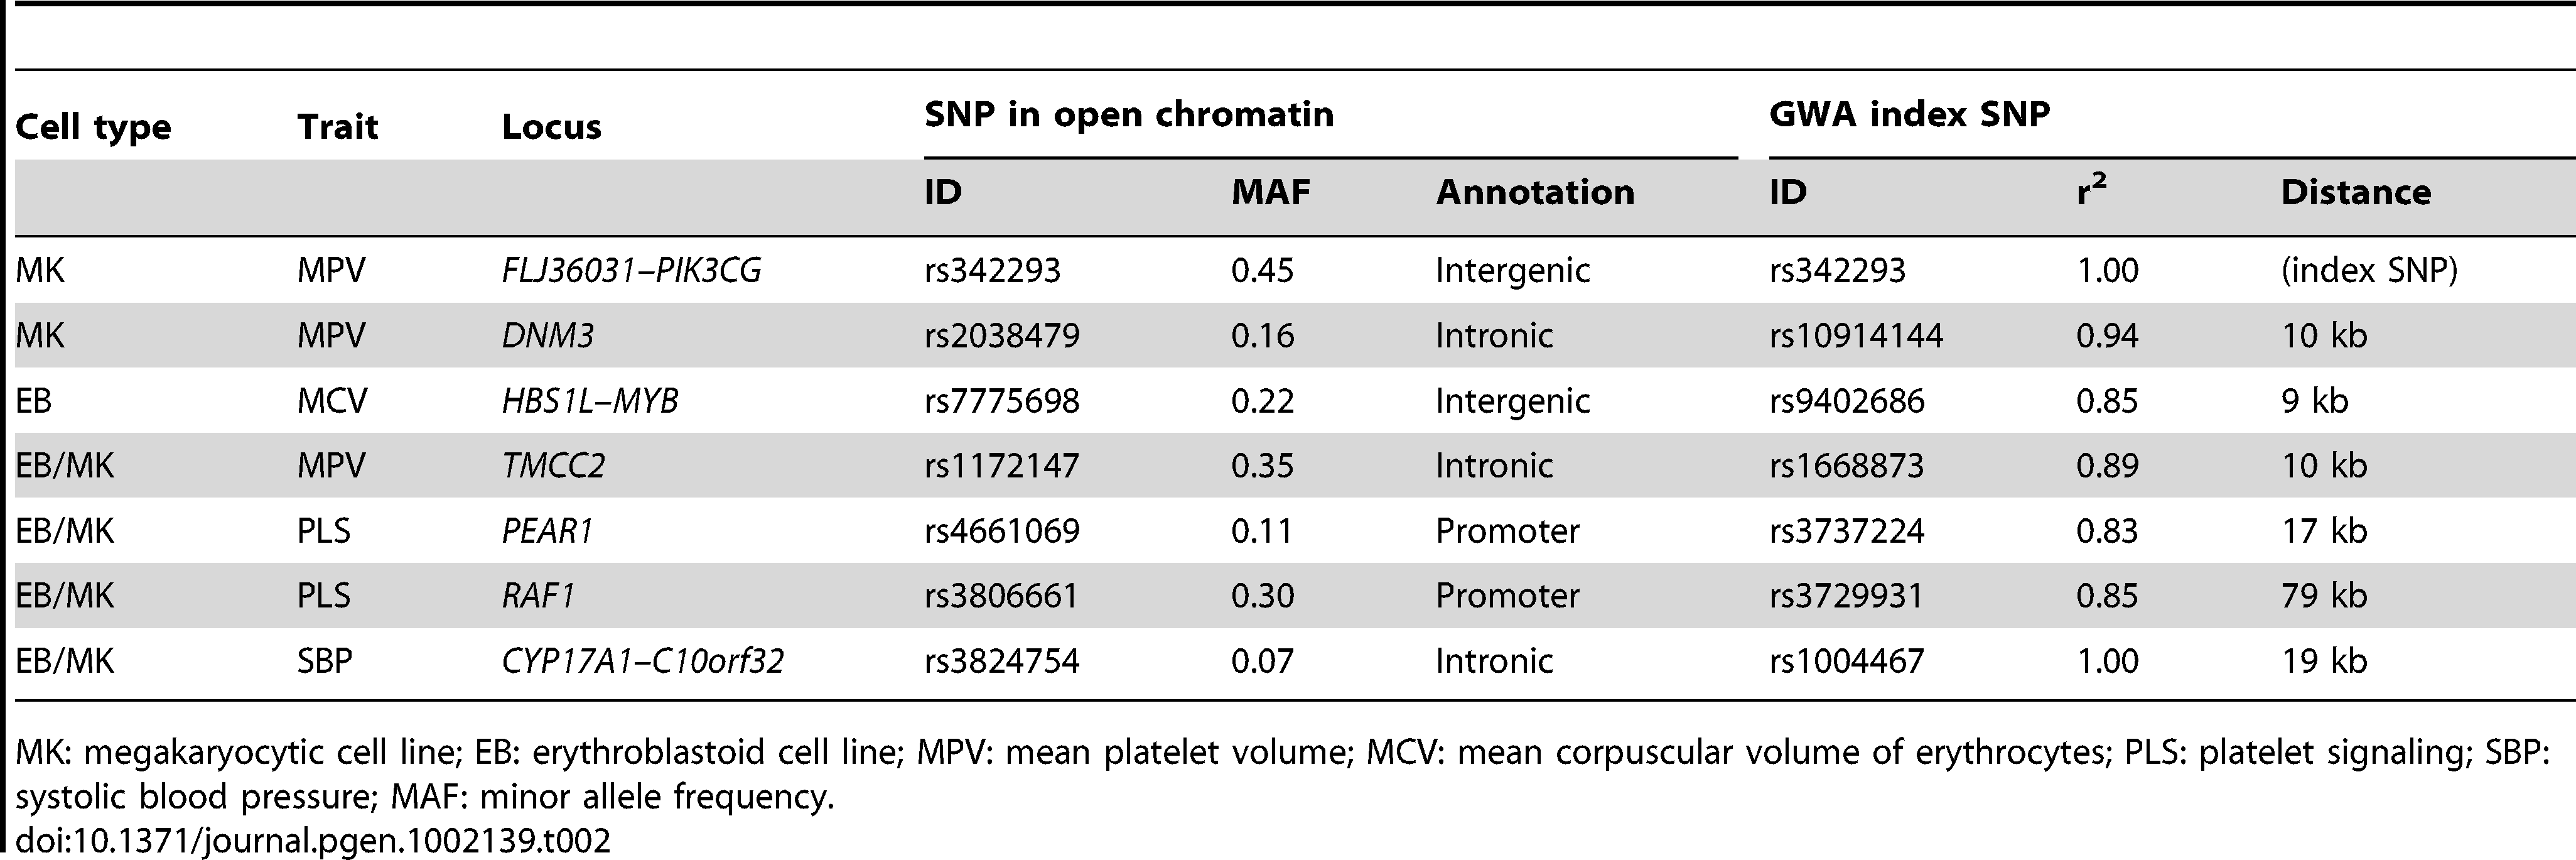 Seven sequence variants associated with cardiovascular-related and hematological intermediate traits are located in nucleosome-depleted regions (NDRs).